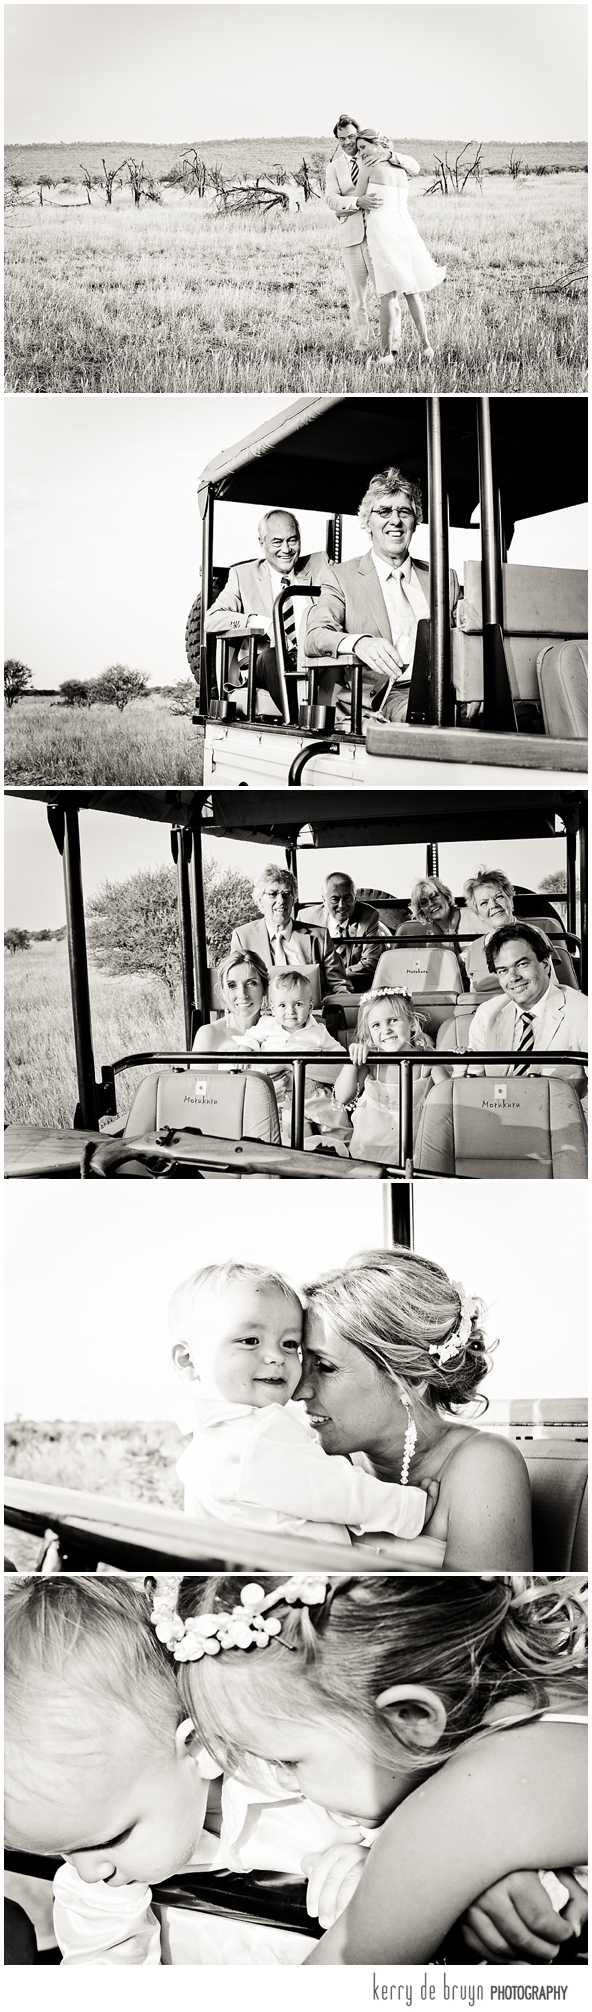 Safari wedding photography